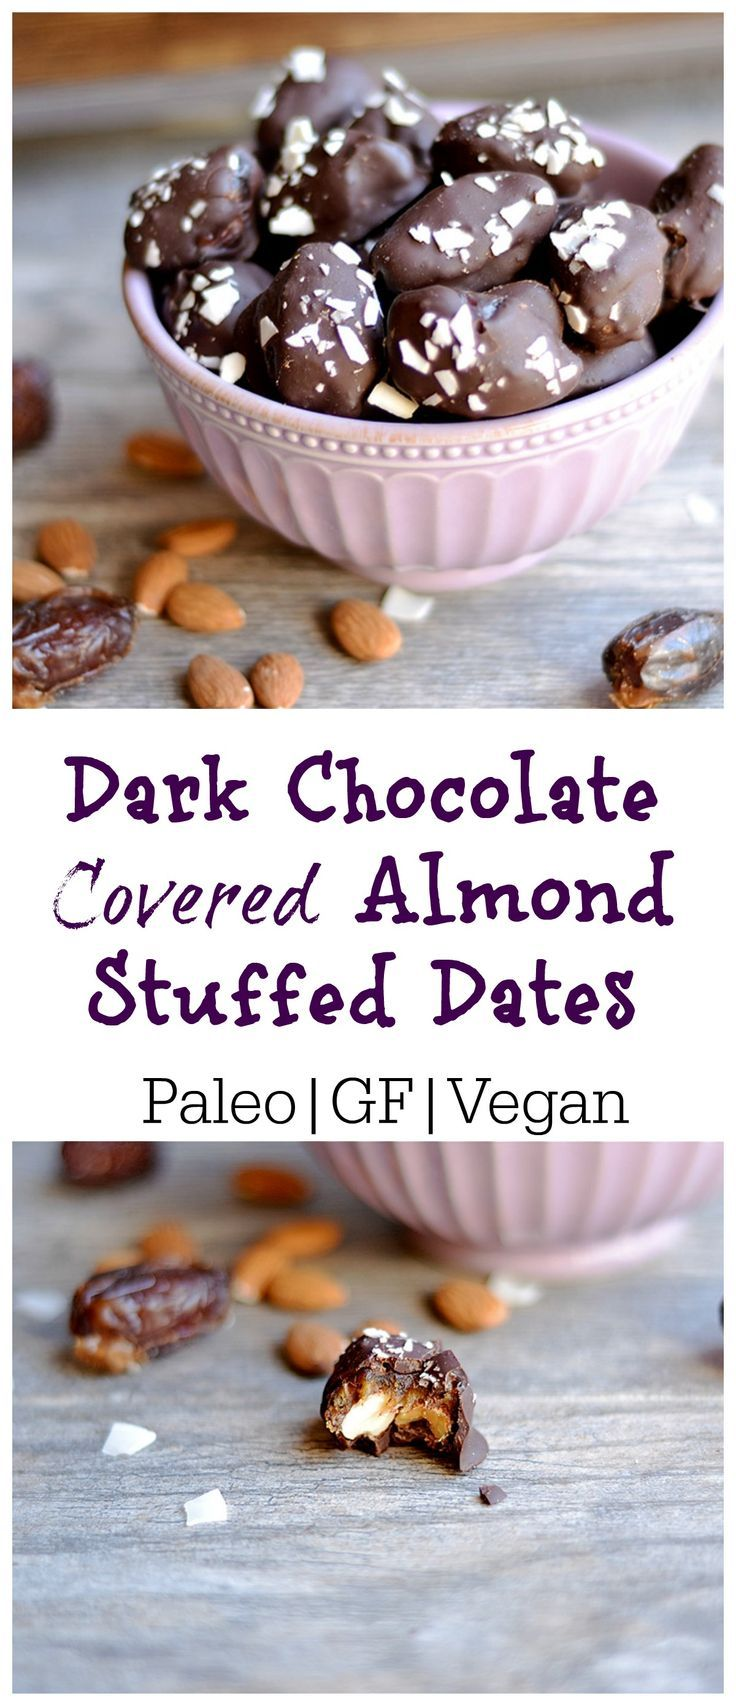 1000+ ideas about Stuffed Dates on Pinterest | Devils on ...